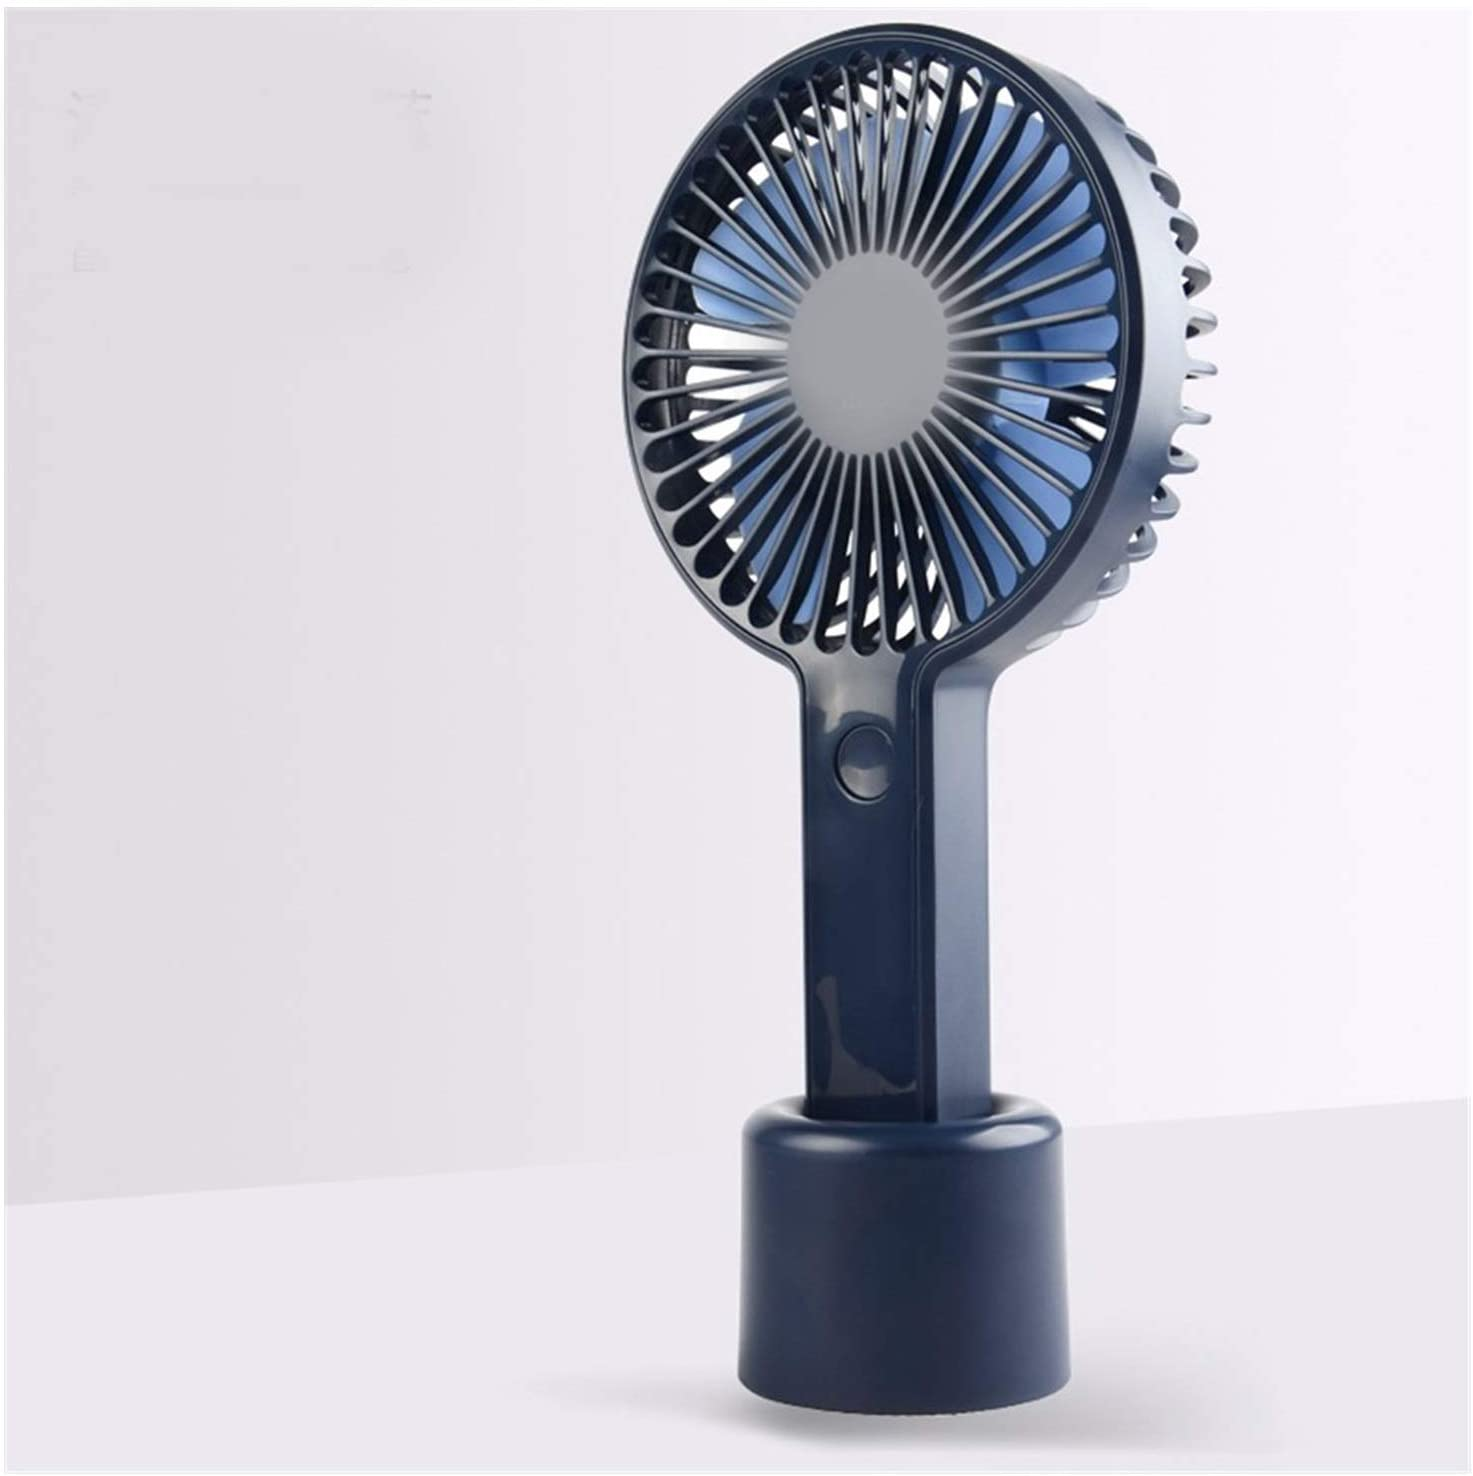 Air Cooling Fan Handheld Portable Personal Fan USB Cooling Electric Fan Outdoor 3 Gear Wind Fans Color : Black